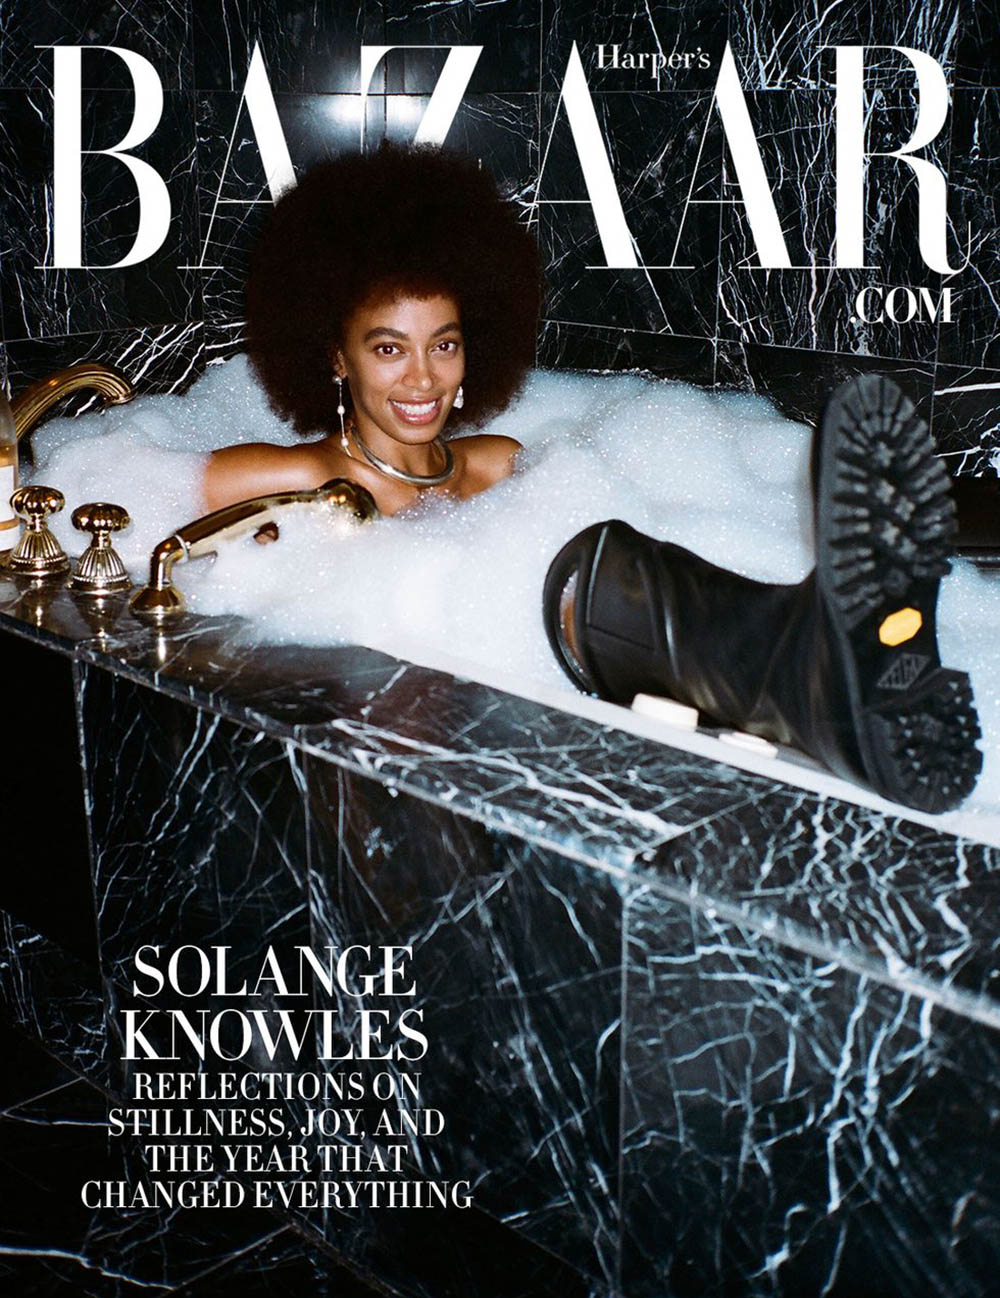 Solange Knowles covers Harper's Bazaar US Fall 2020 Digital Edition by Naima Green